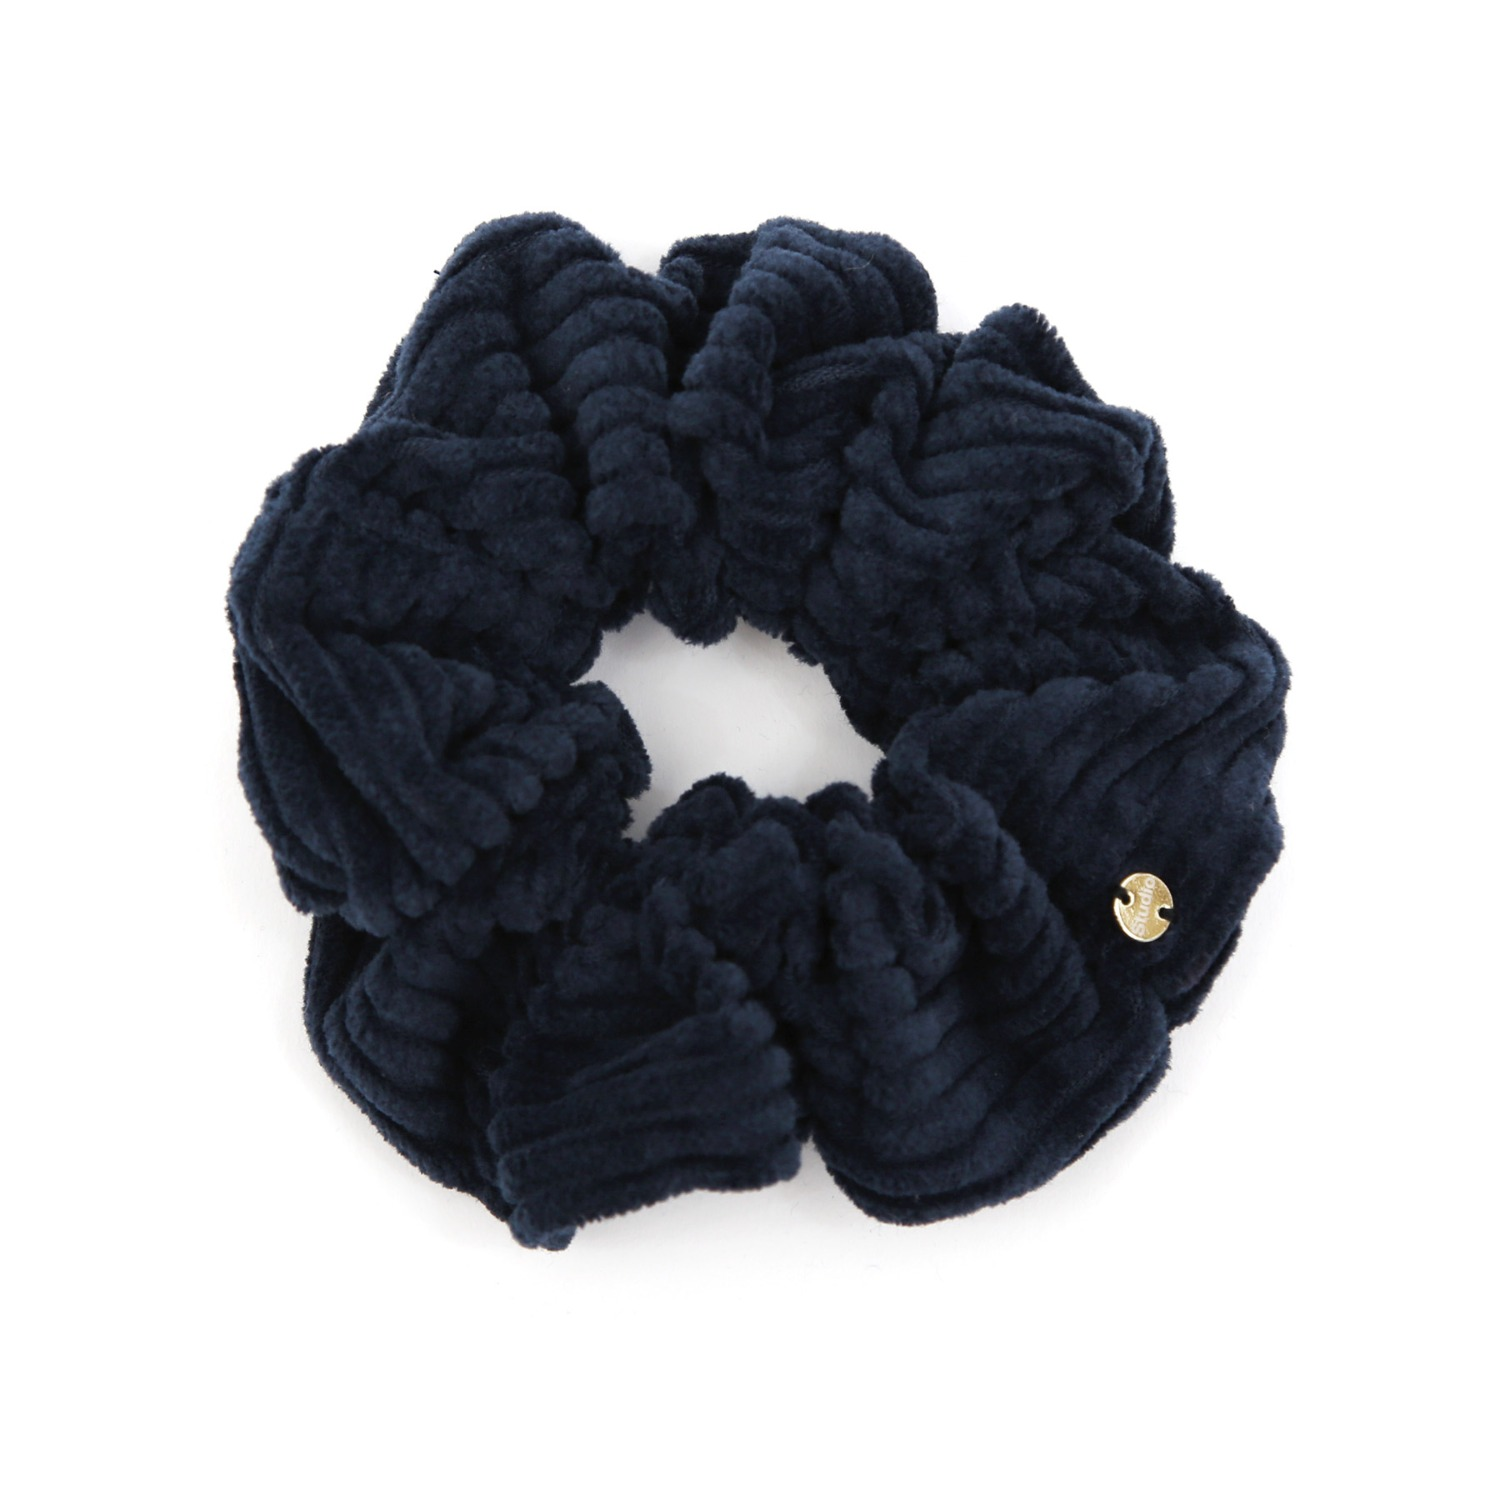 SCRUNCHIE / TINY / JEWEL / CORD NAVY